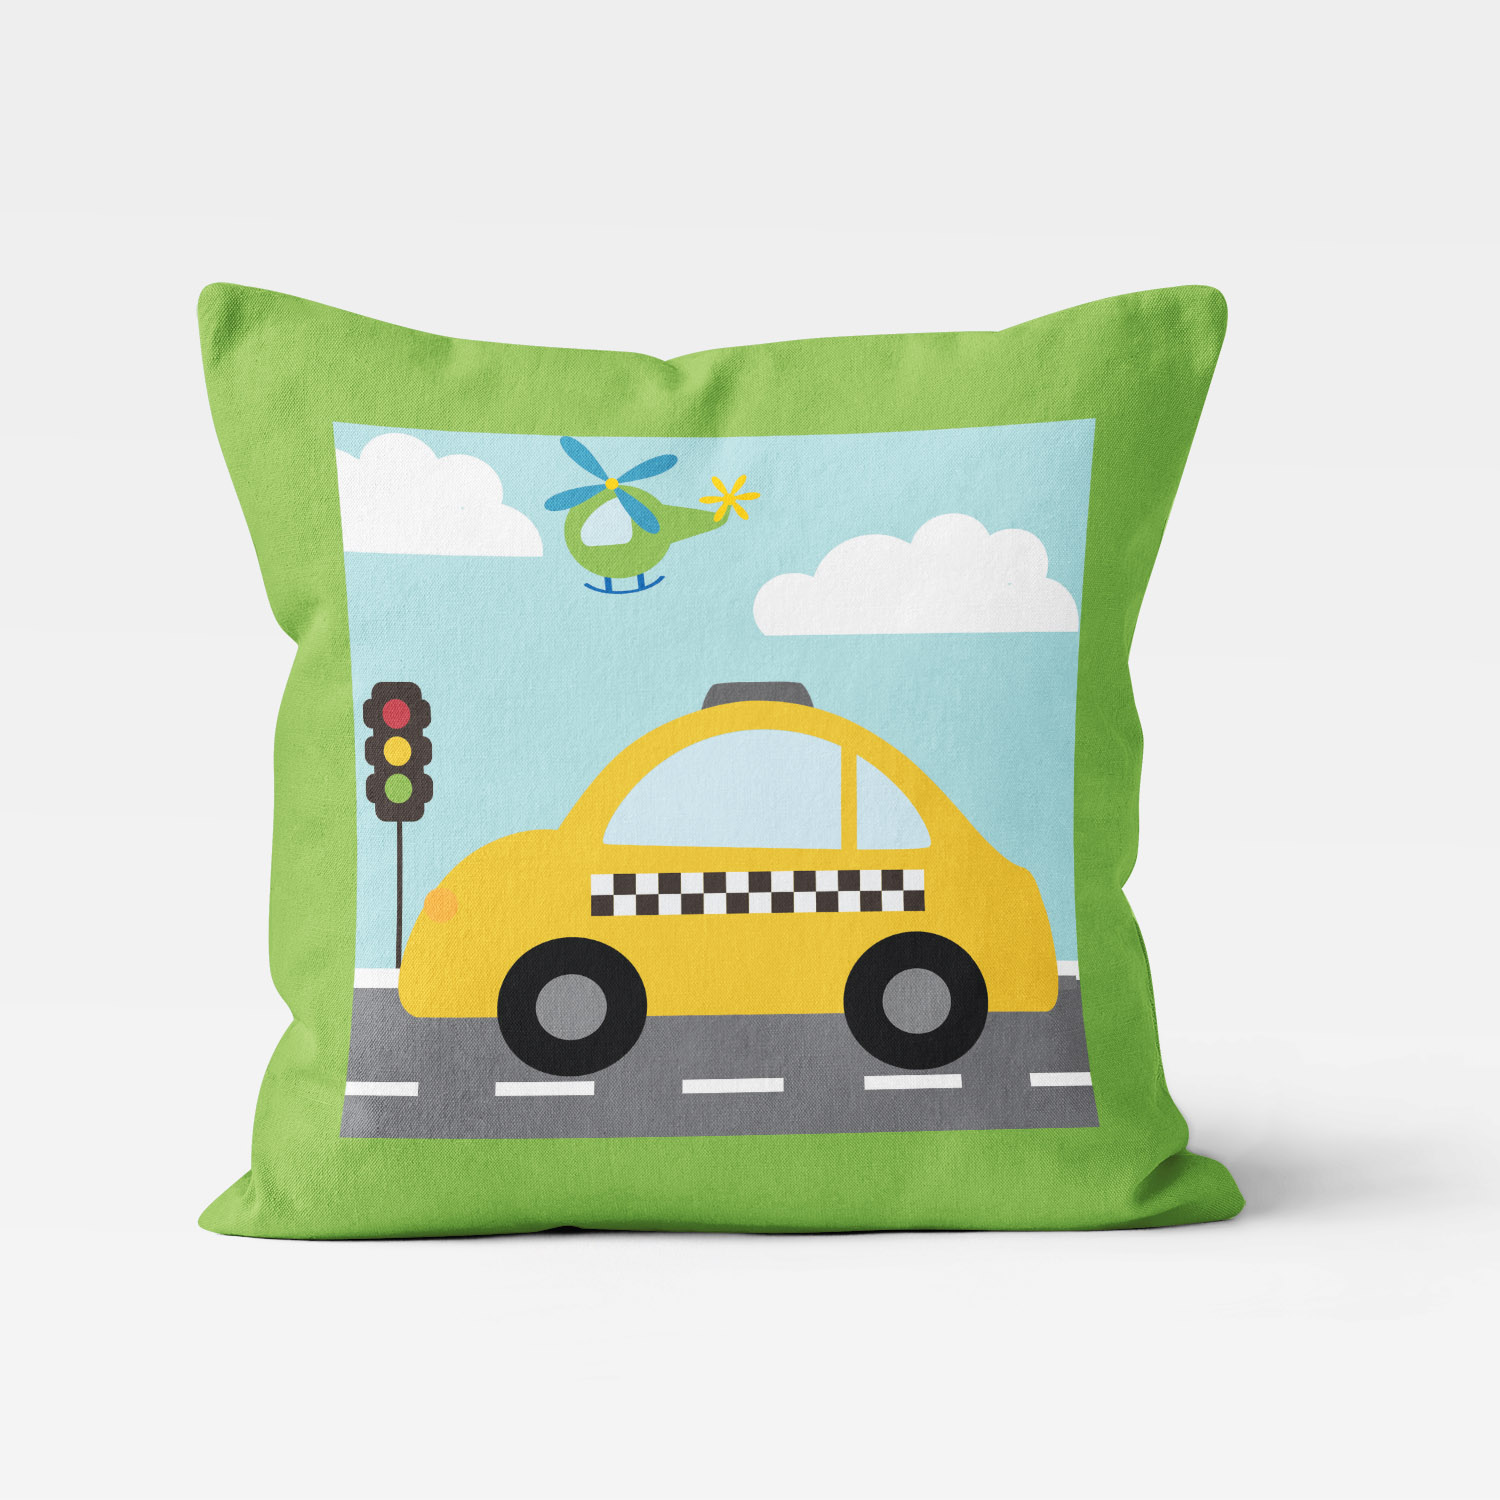 TTGV-PIL18X18-A Things That Go Vroom Transportation Theme Taxi Cab Boys Kids Accent Throw Pillow Room Decor Accessories by Pickleberry Kids